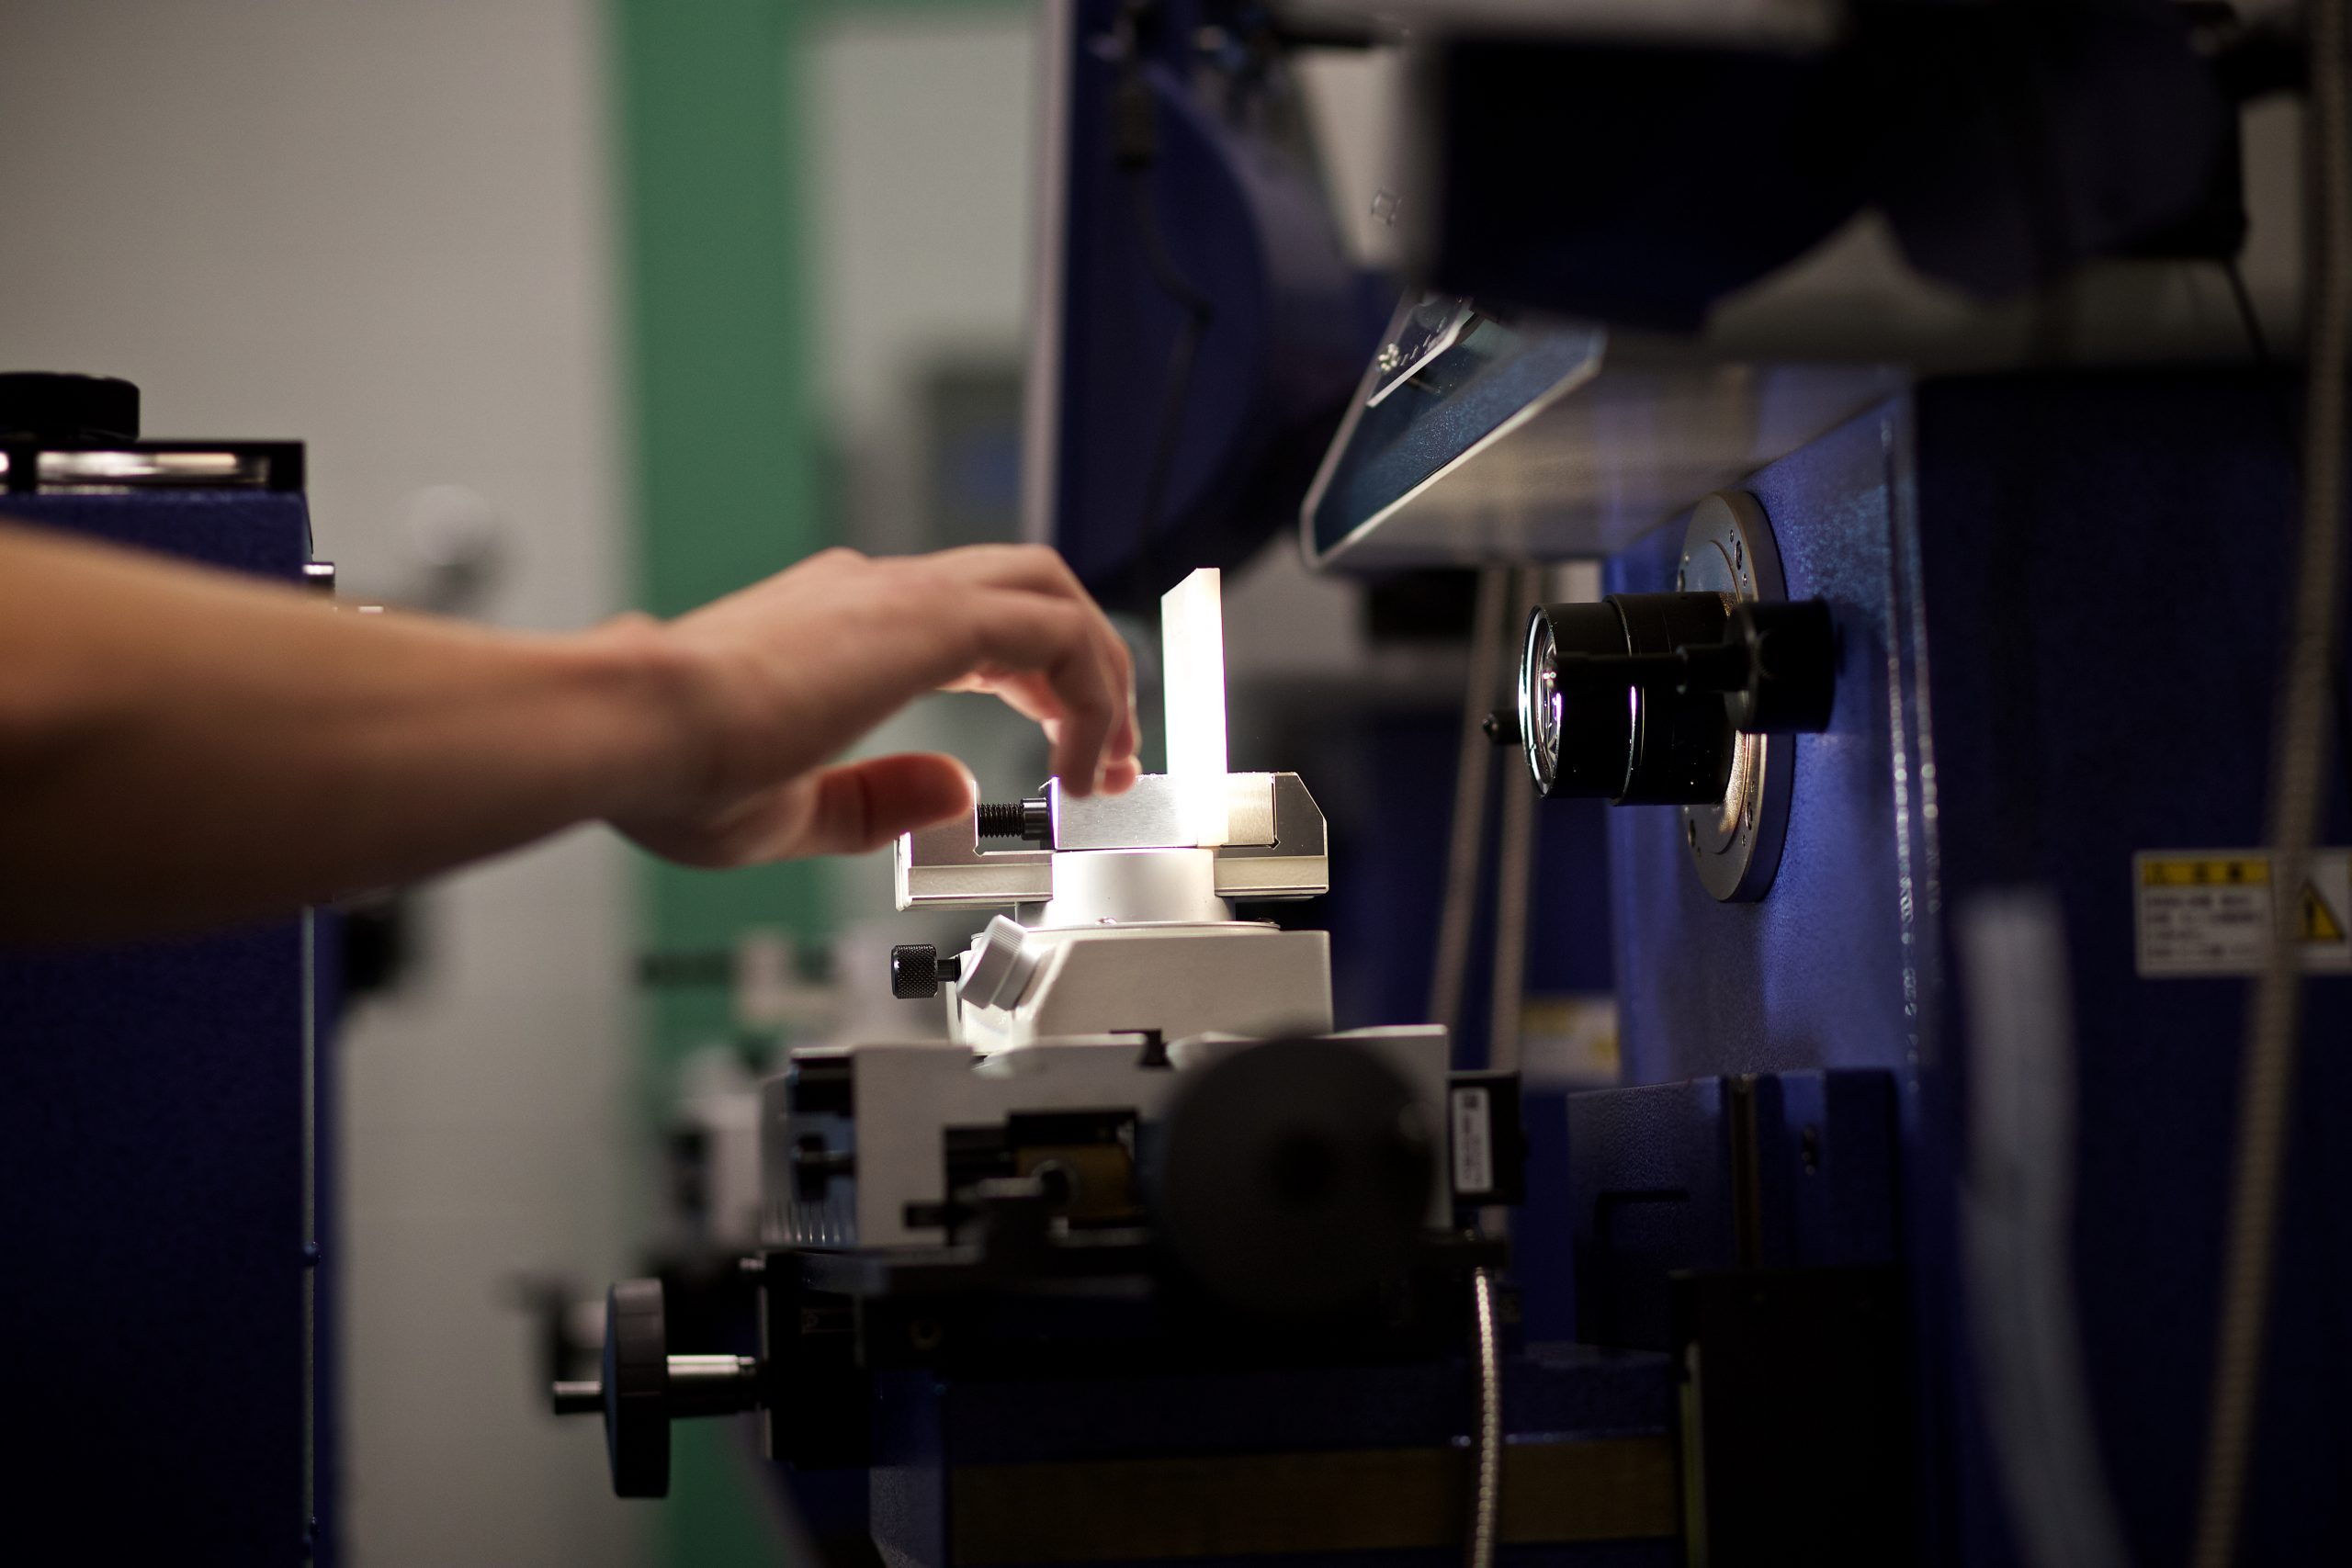 Vermont Tech students measures a manufacturing production piece in the metrology lab